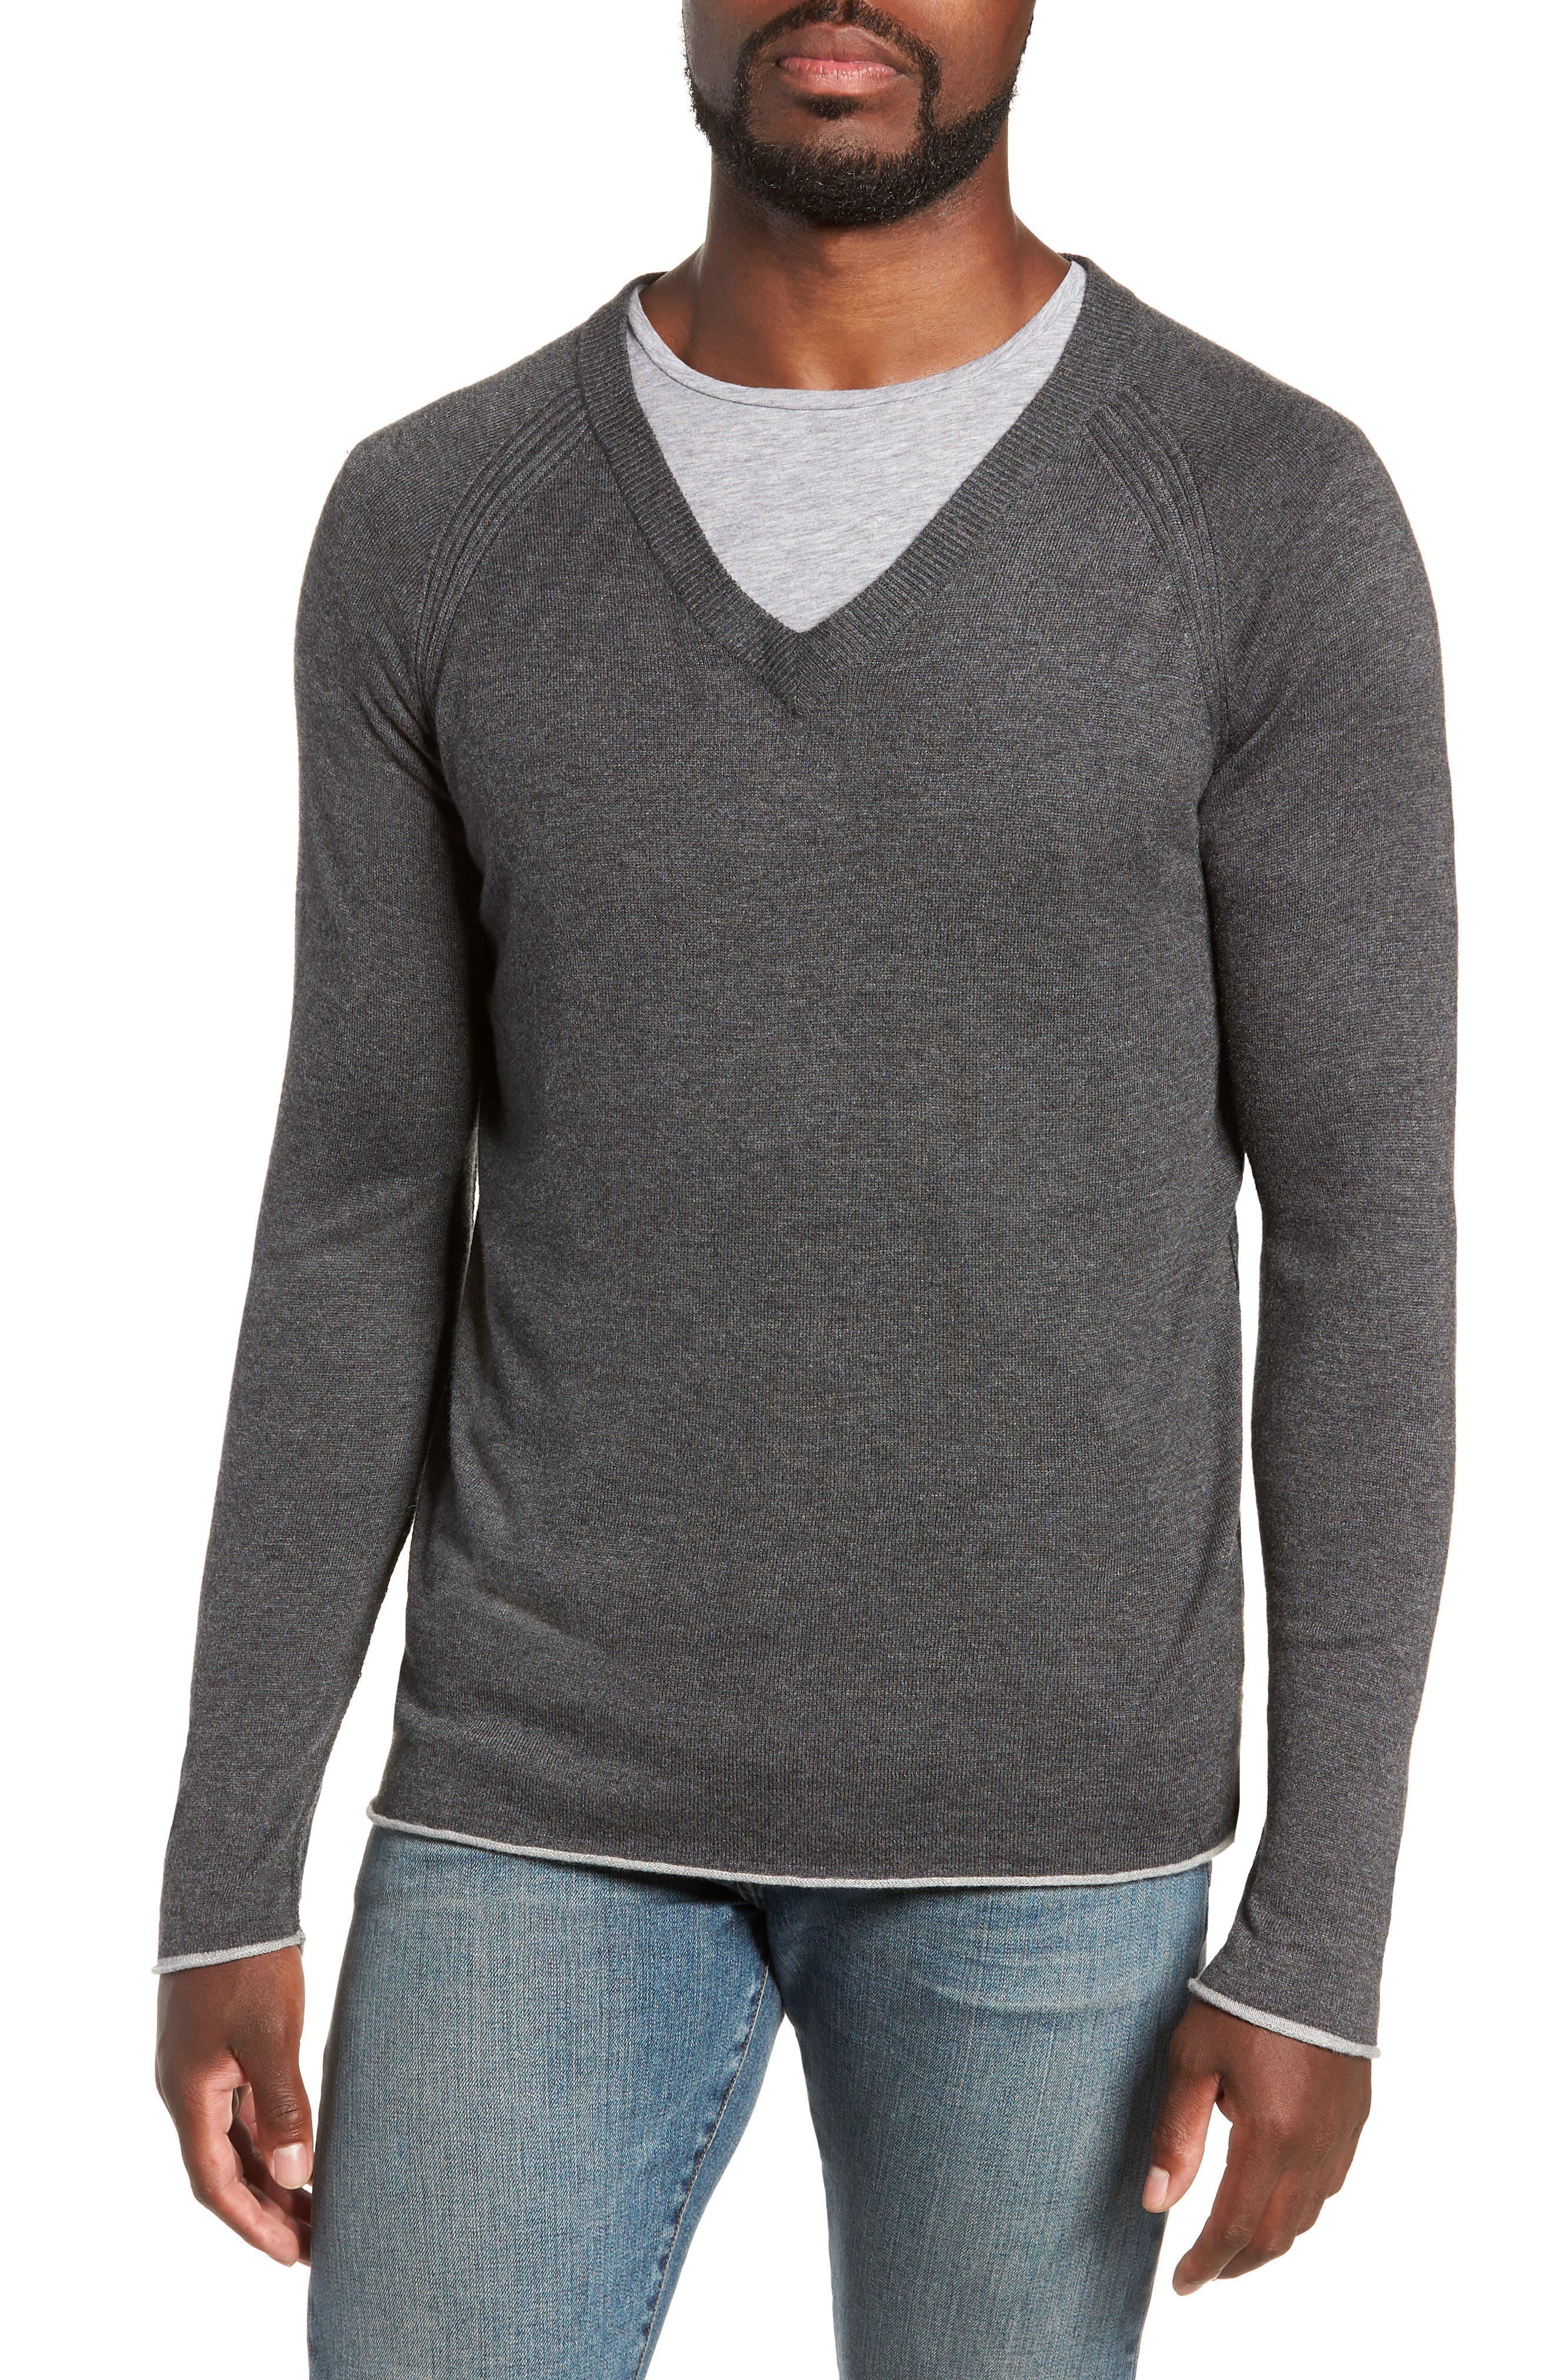 Salinas Cash V-Neck Sweater,                             Main thumbnail 1, color,                             CHARCOAL HEATHER